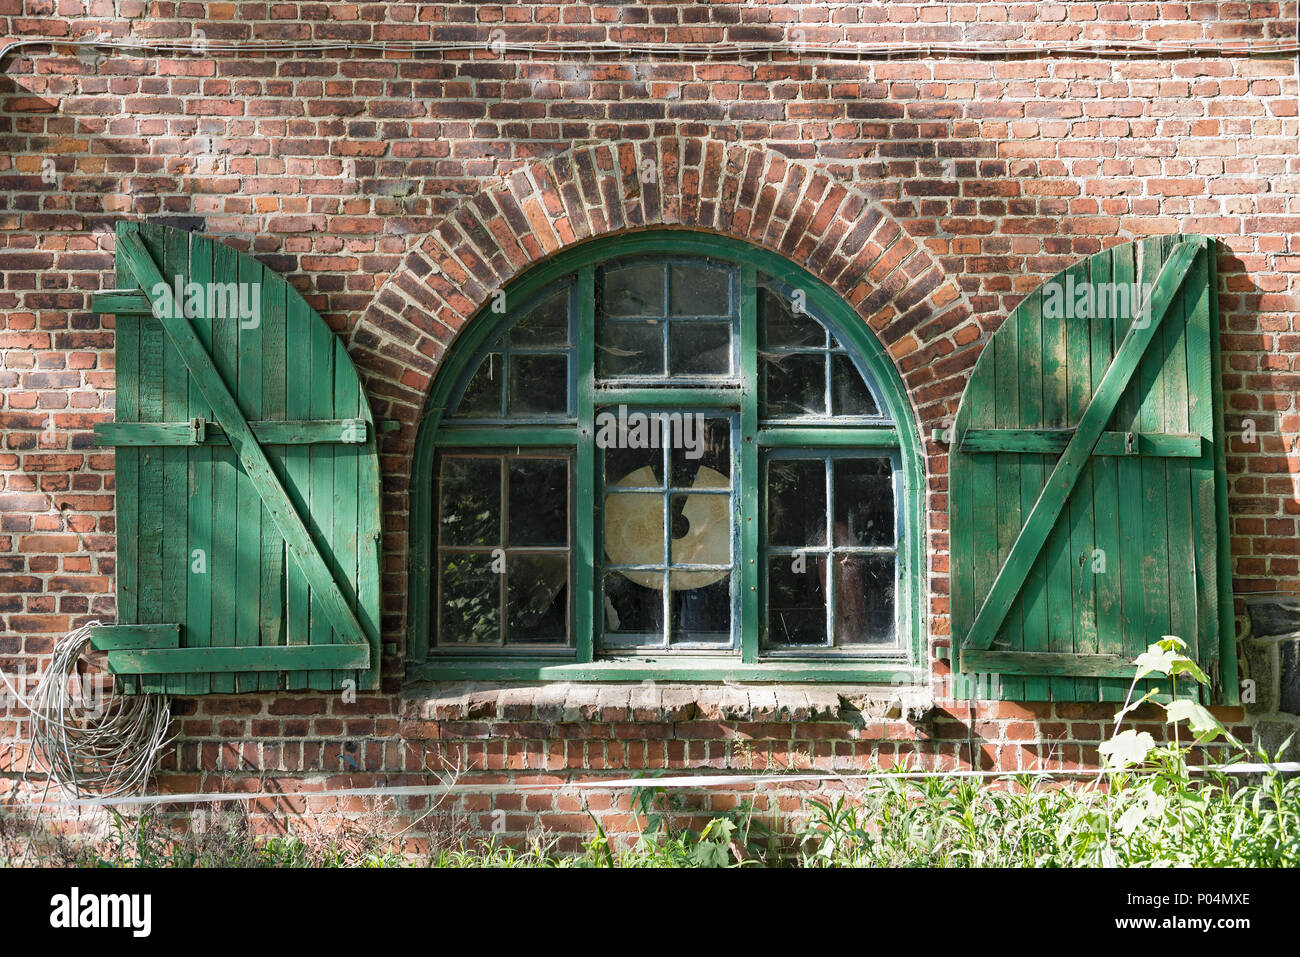 Window in a brick farmhouse with shutters in Schleswig Holstein, Germany - Stock Image